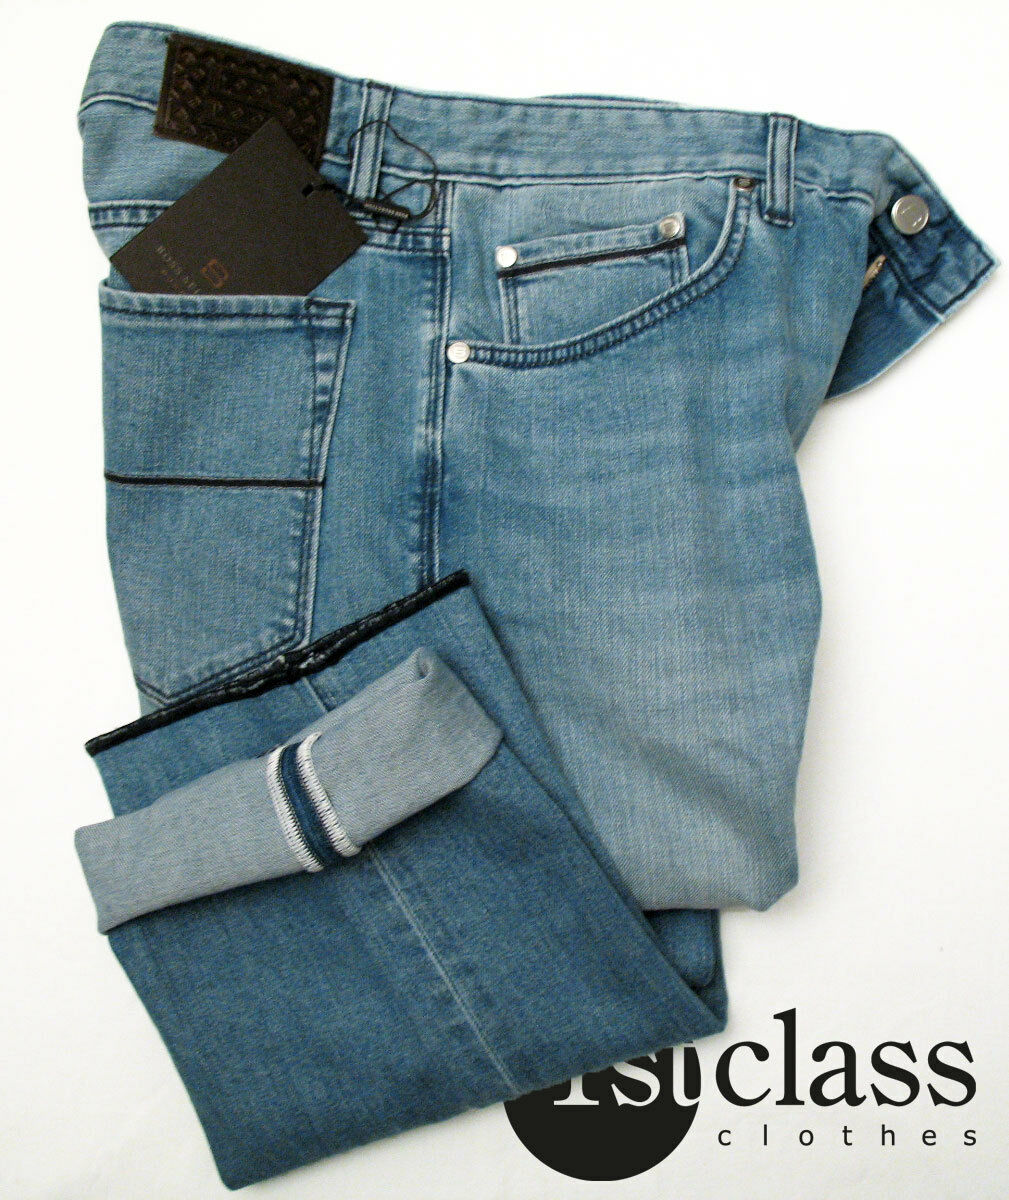 Boss Selection Jeans New Jersey 32 34 in Light bluee Soft Stretch